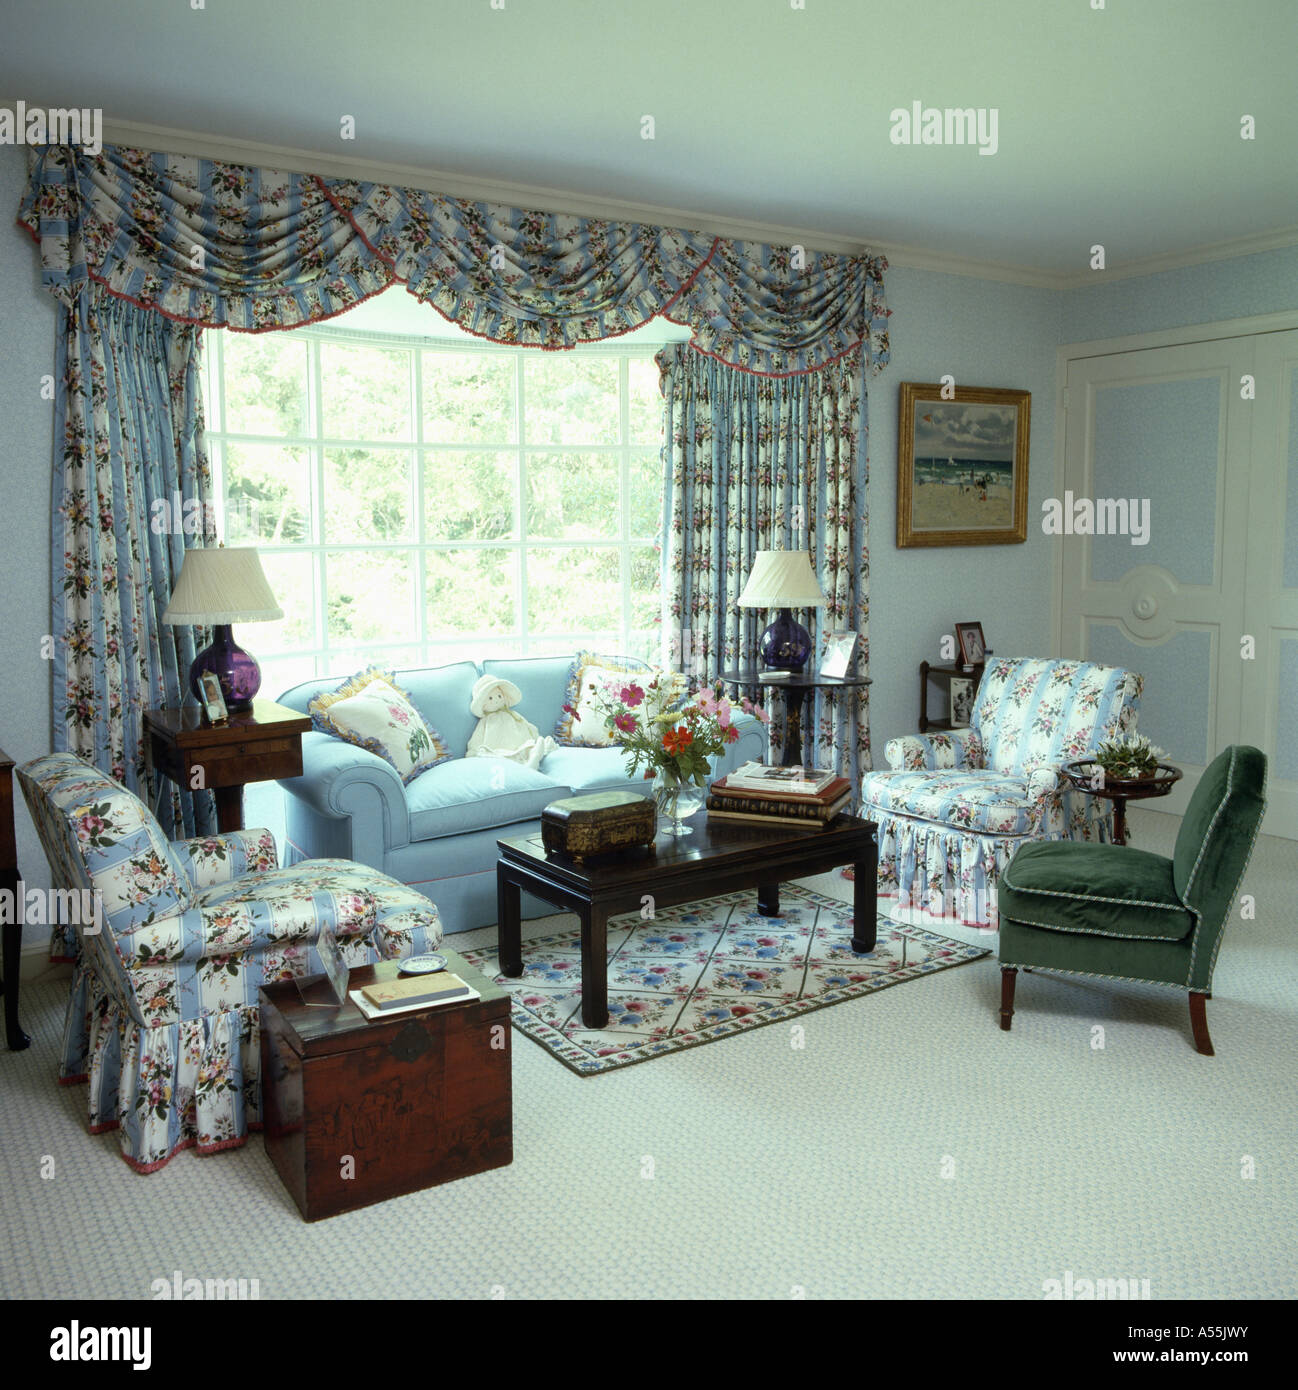 Blue, Pink And White Floral Patterned Drapes And Armchairs In Pale Blue Living  Room With Part 59